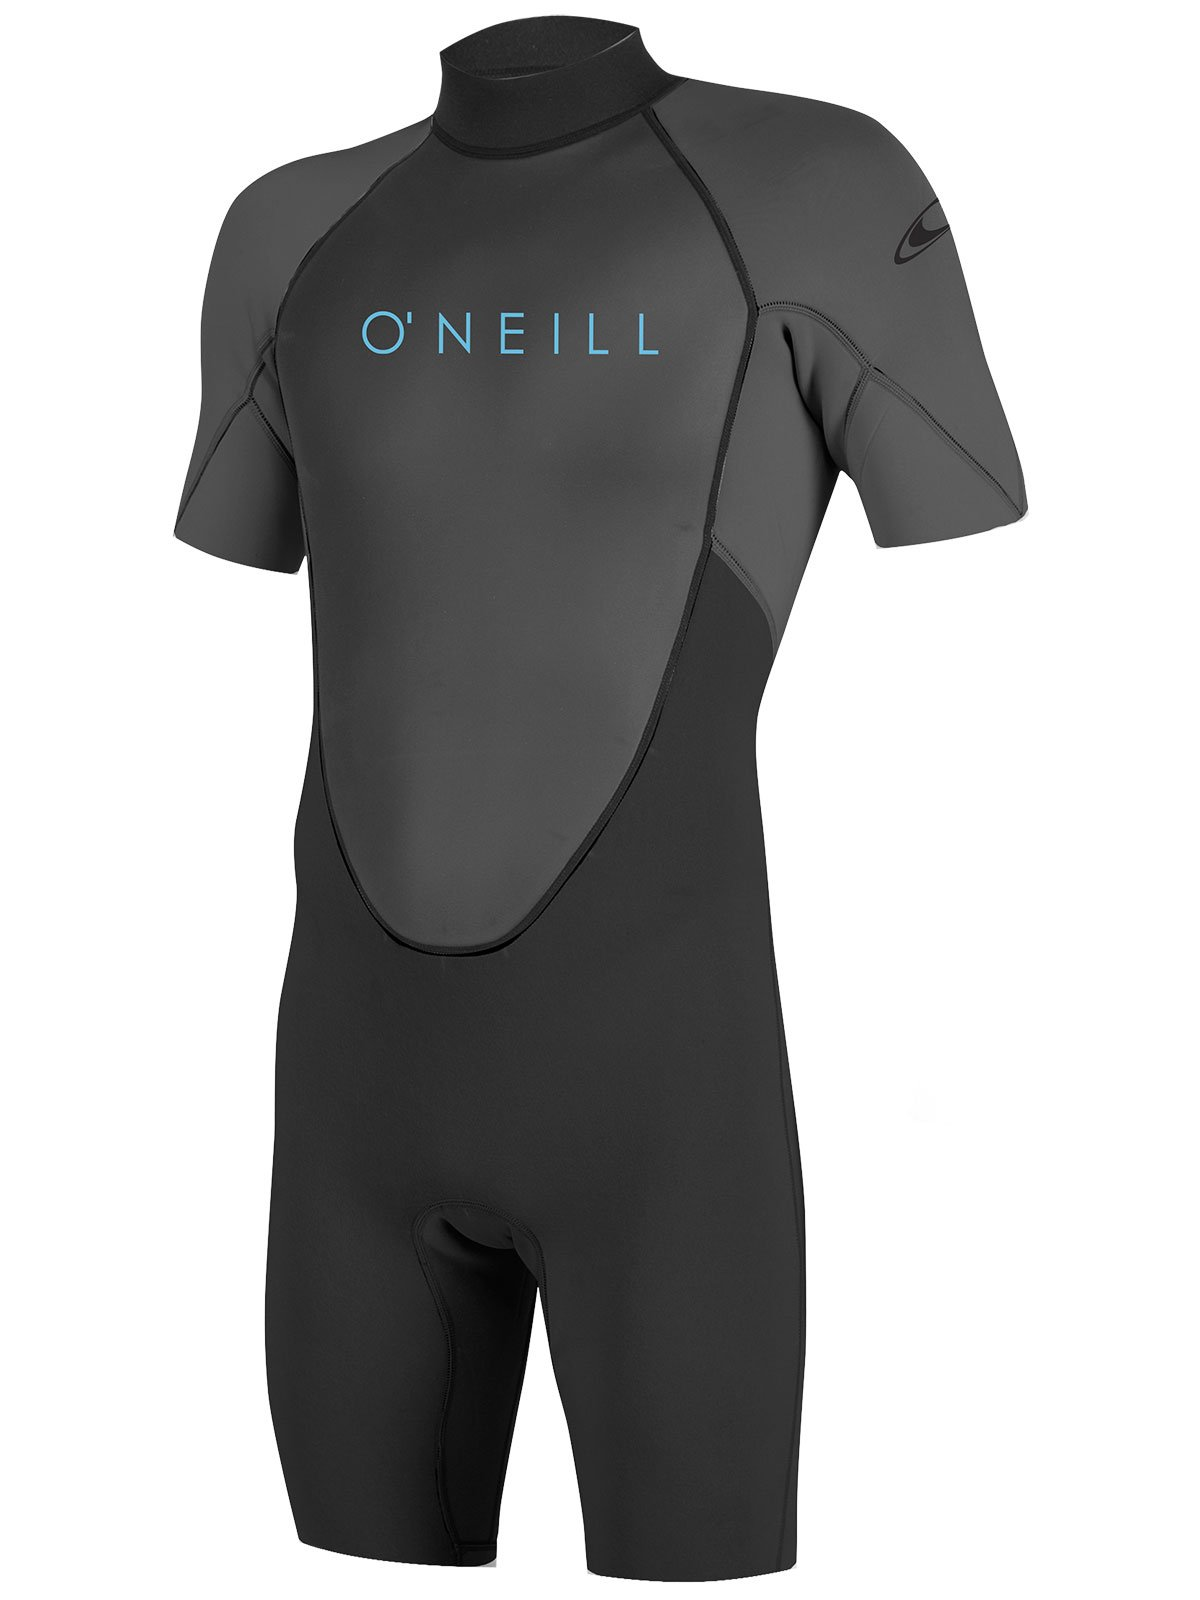 O'Neill Youth Reactor-2 2mm Back Zip Short Sleeve Spring Wetsuit, Black/Graphite, 4